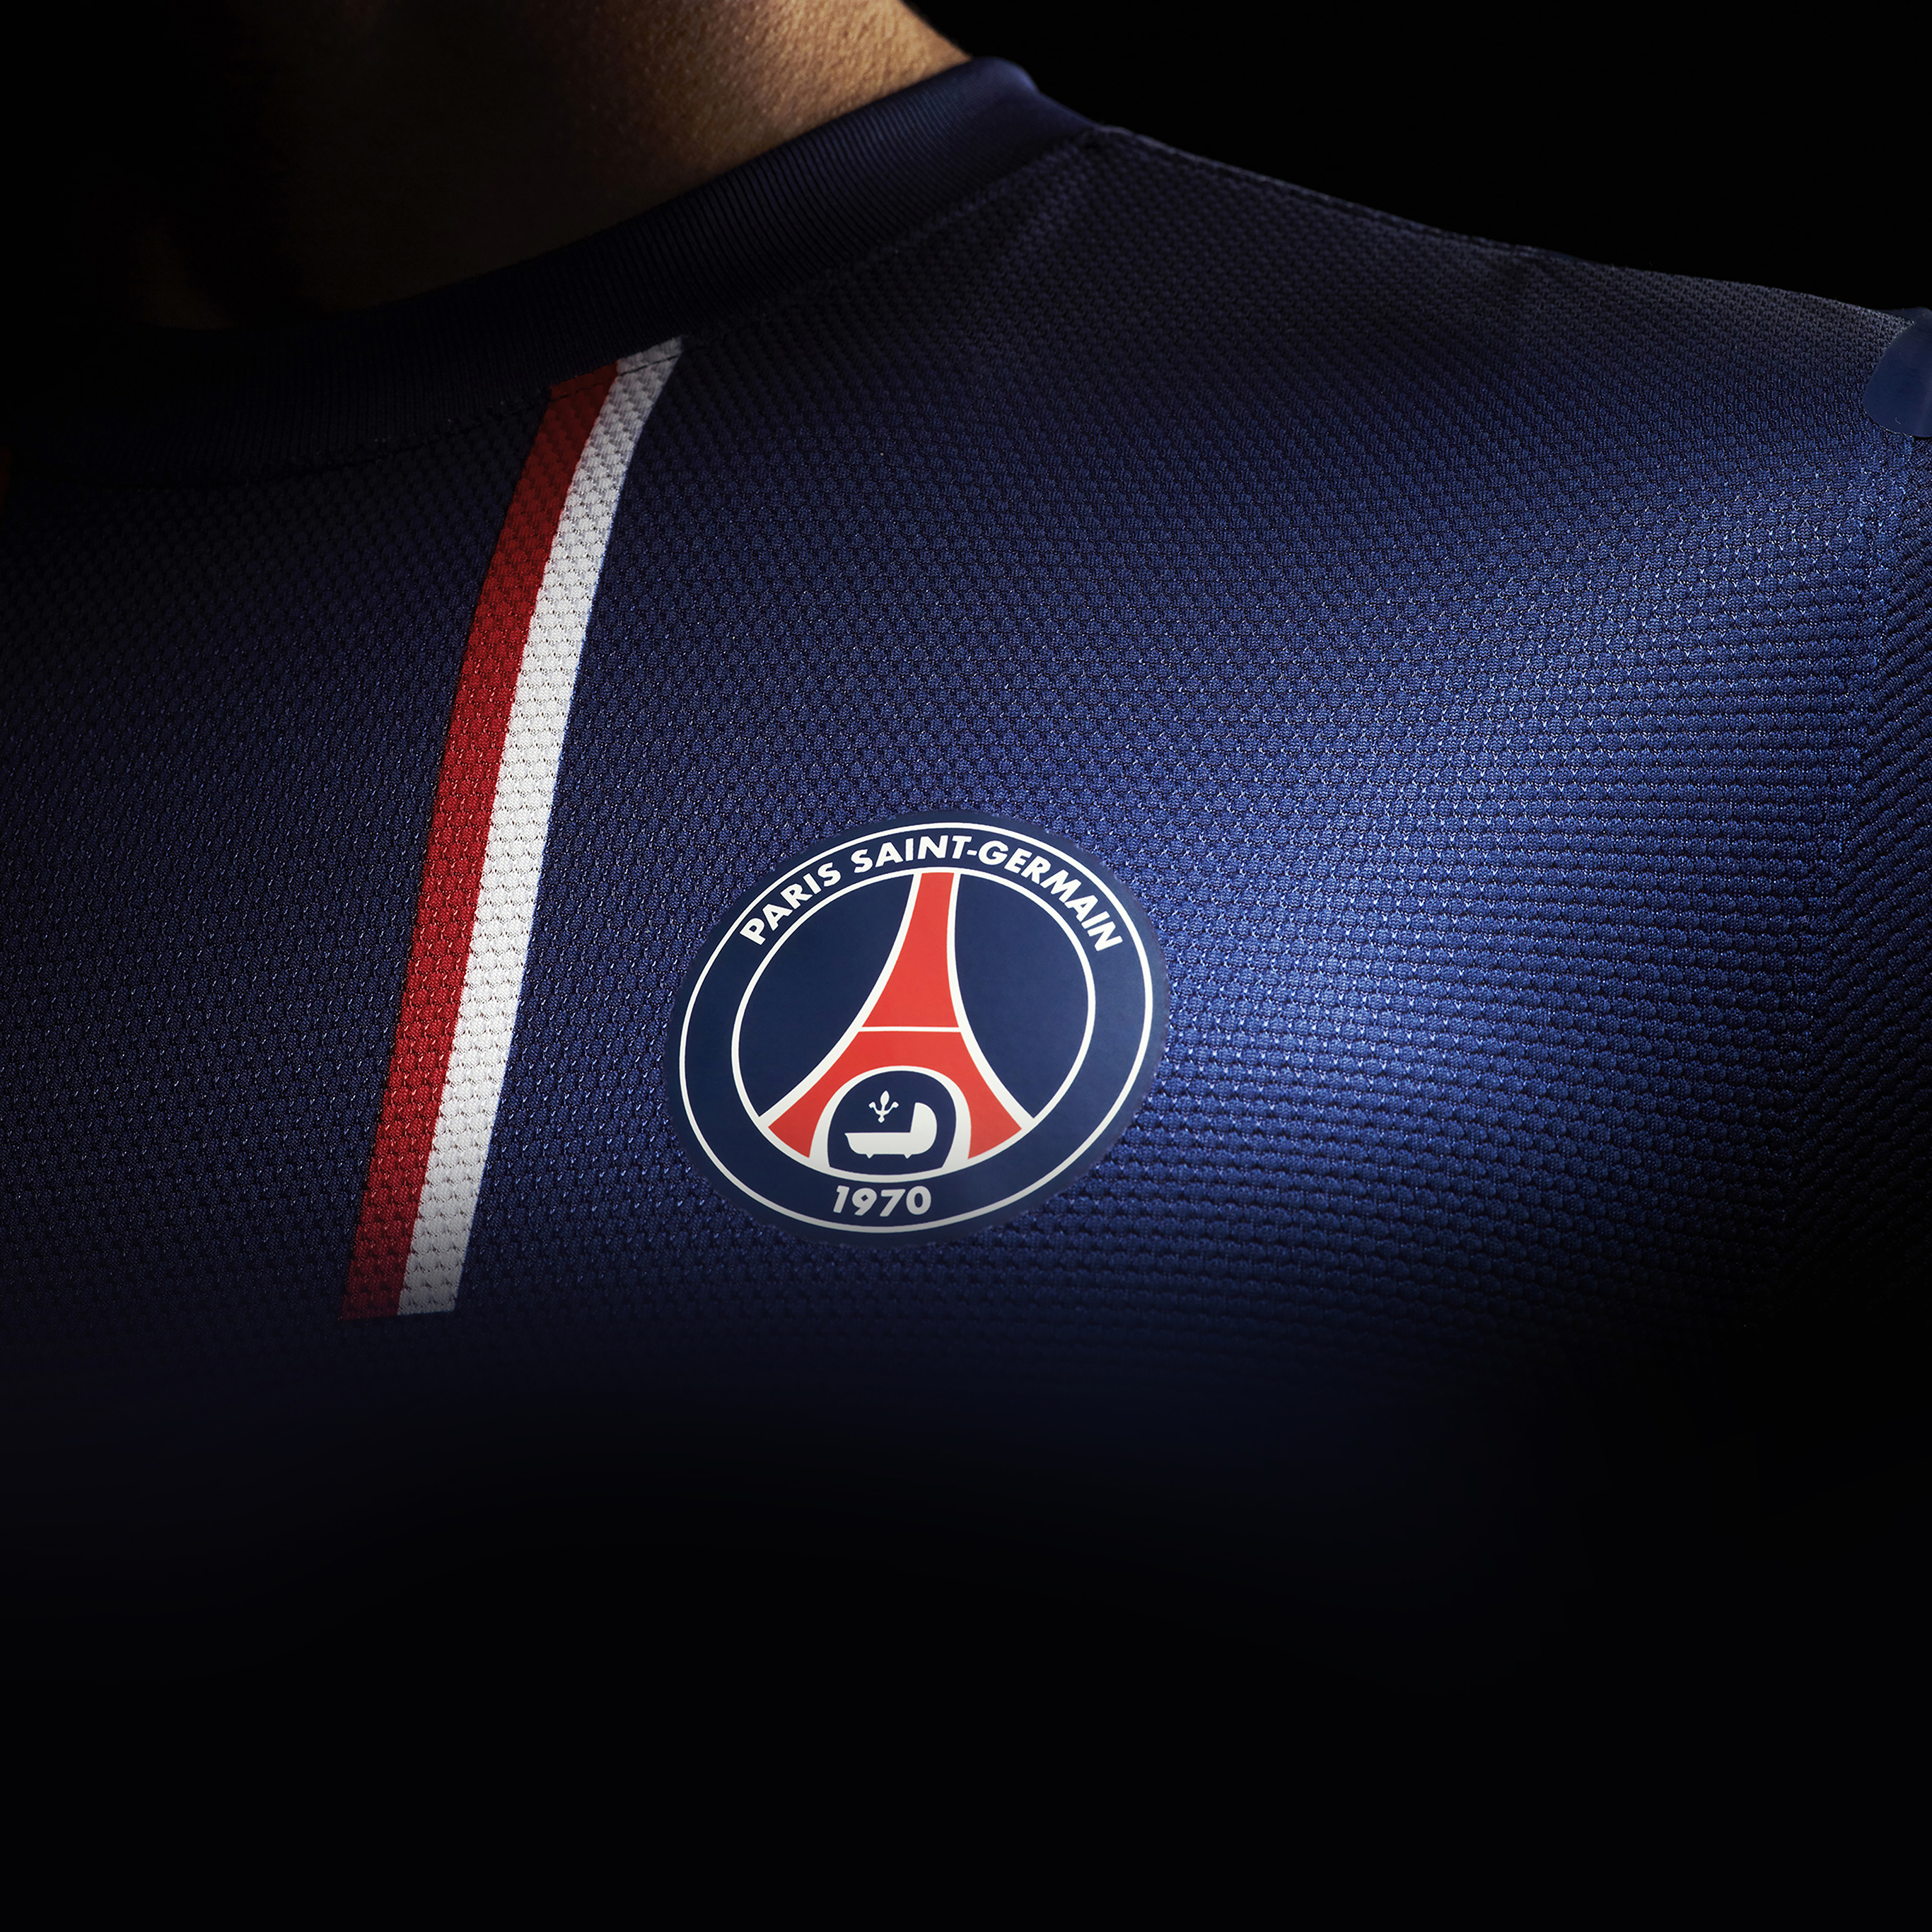 ac61-wallpaper-psg-paris-saint-germain-fc-jersey-logo